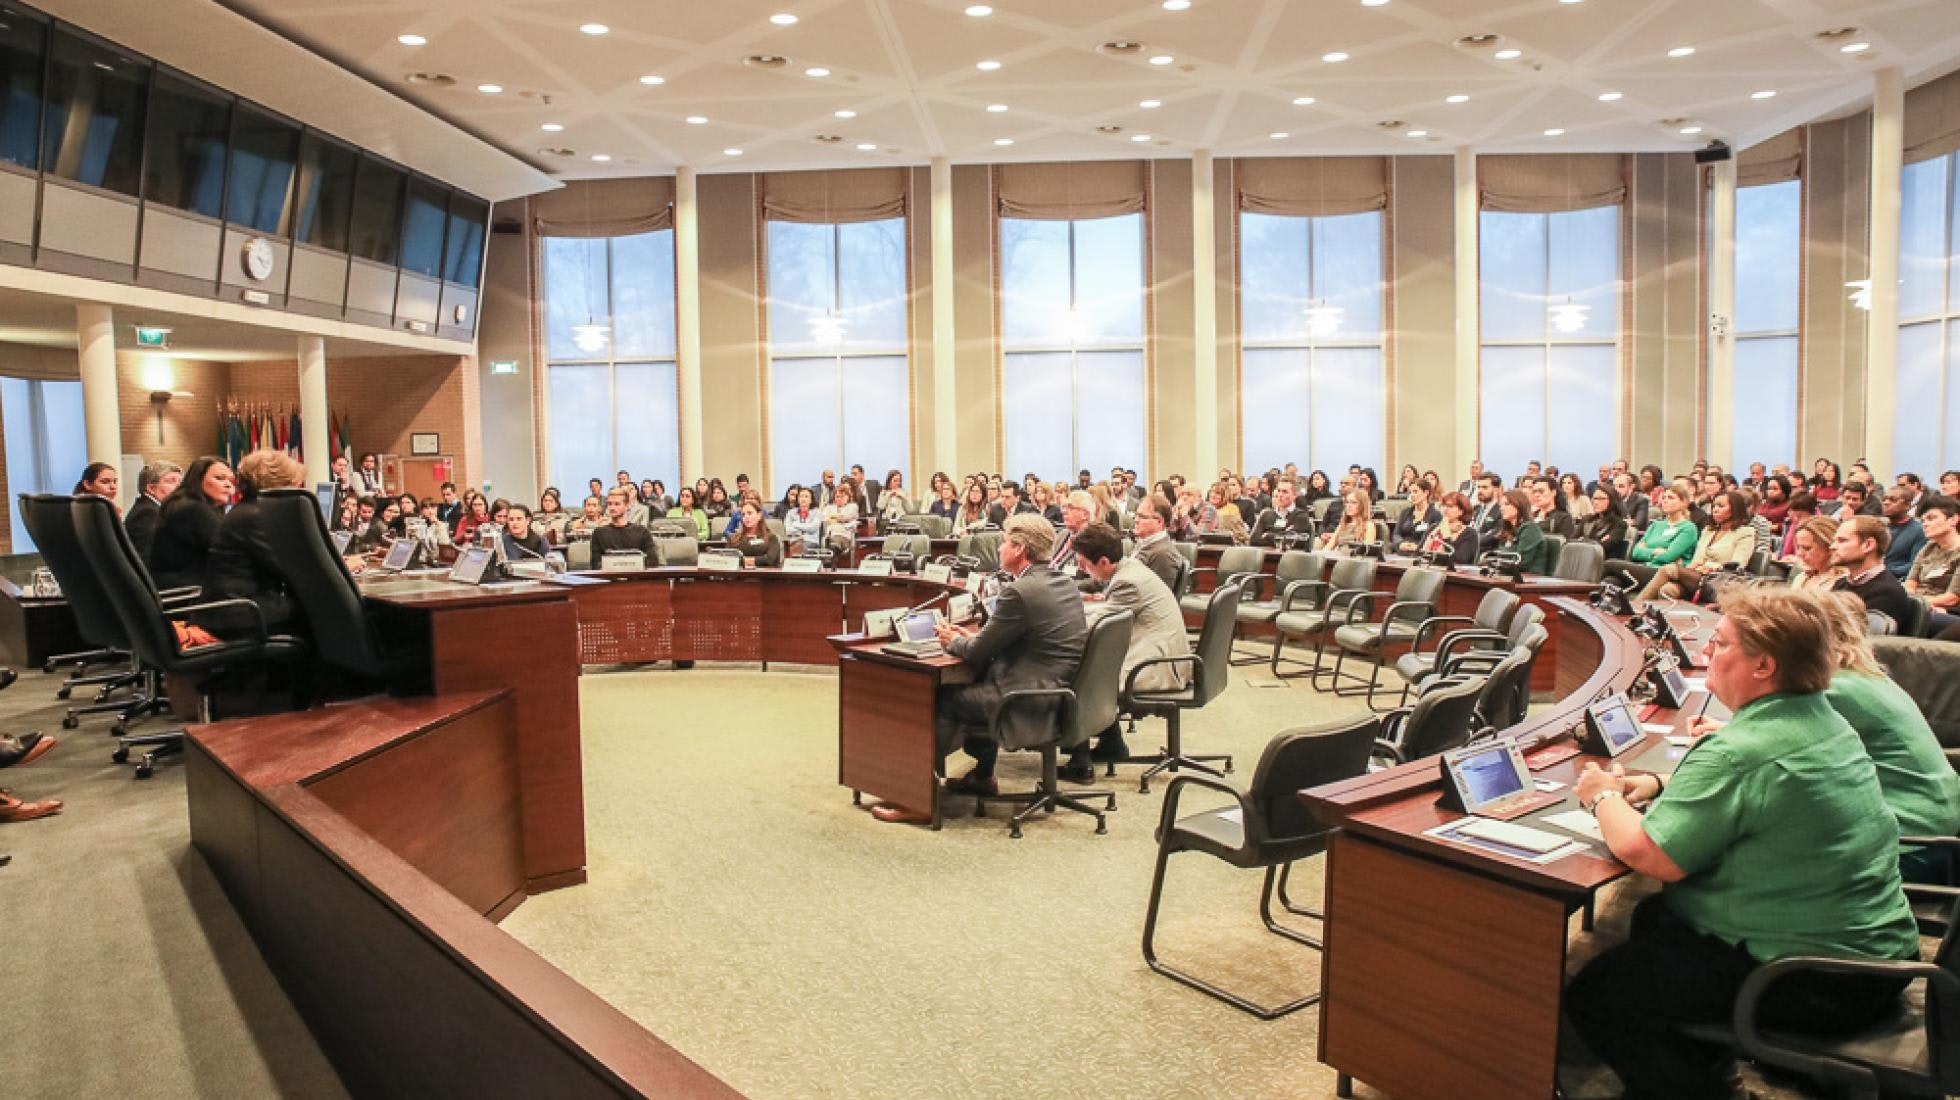 OPCW Hosts Second Diversity and Inclusion in the Workplace Event